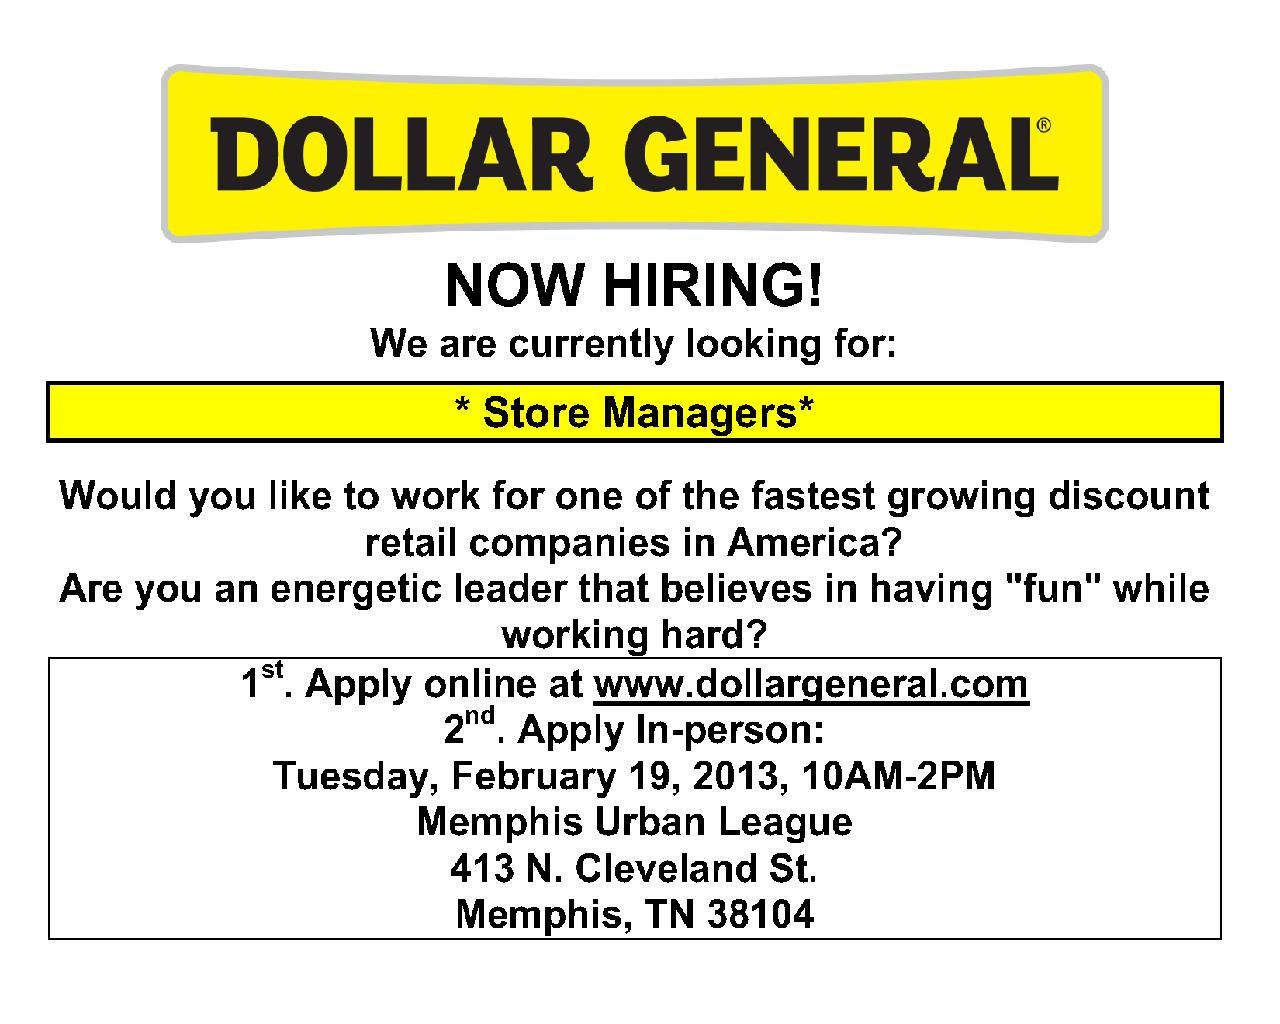 dollar general job fair memphis urban league 2 19 13 job dollar general job fair at memphis urban league flyer 020413 2 1